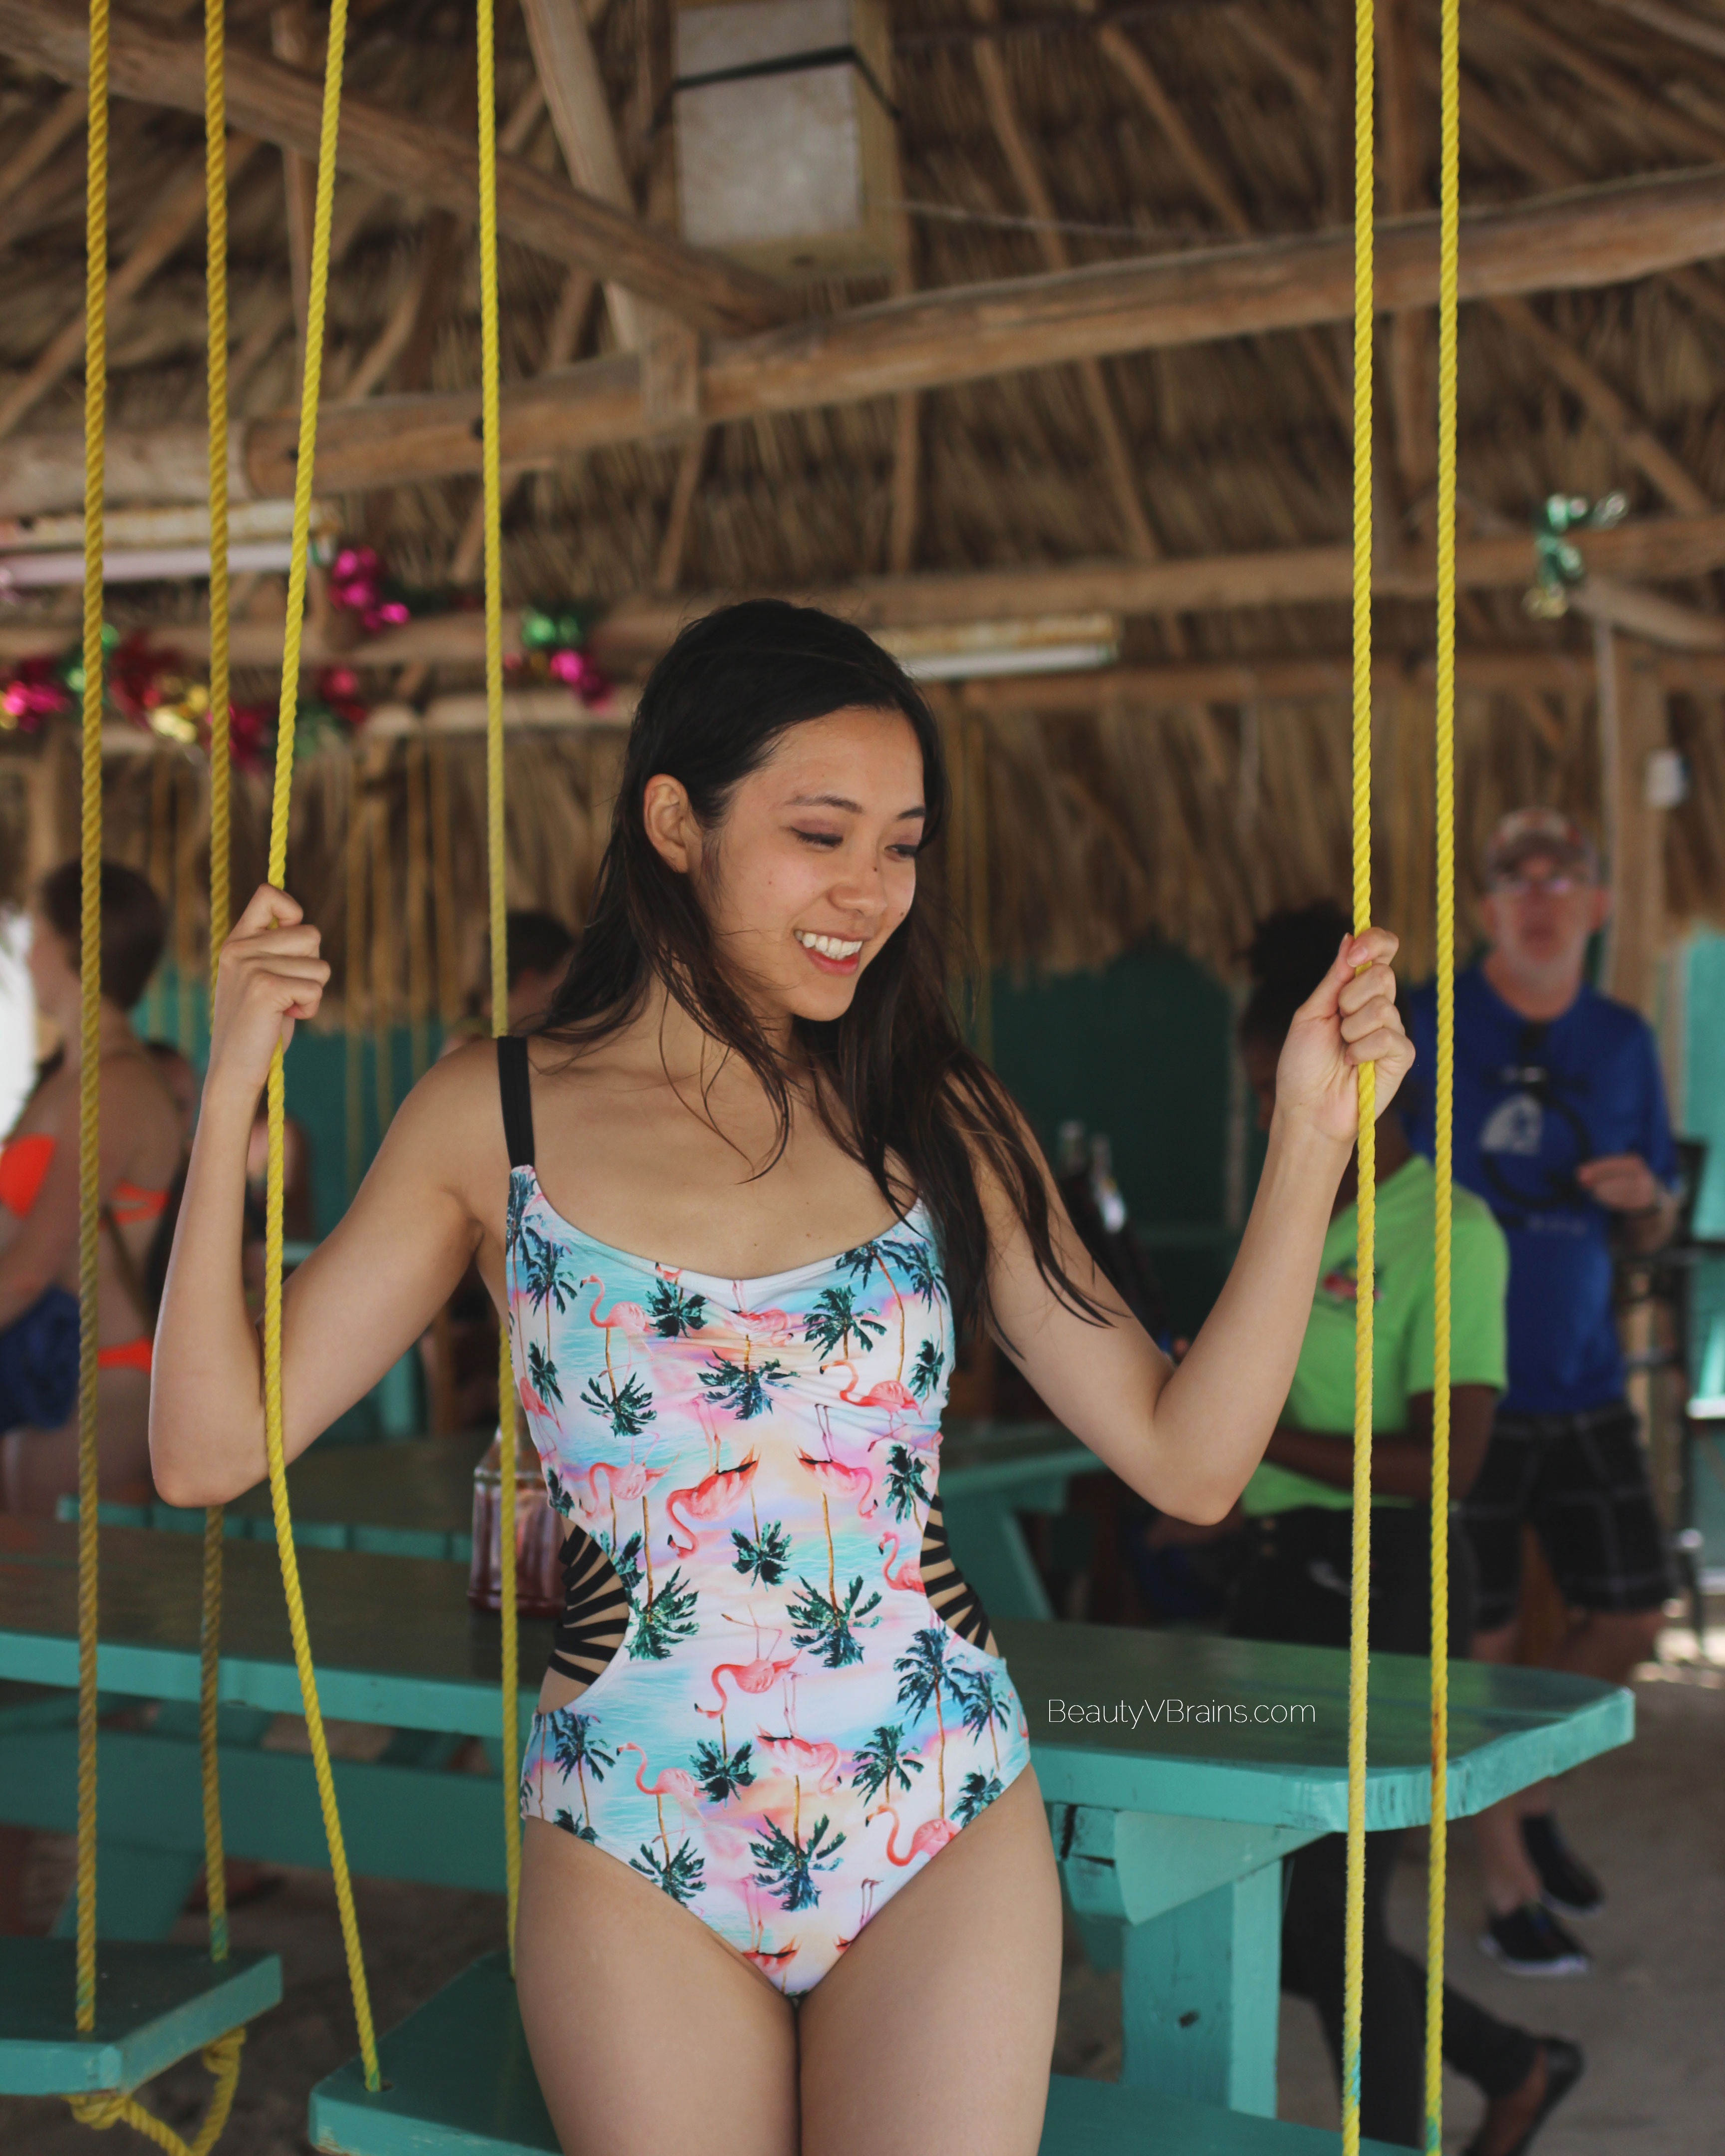 Flamingo one piece swimsuit on Caye Caulker